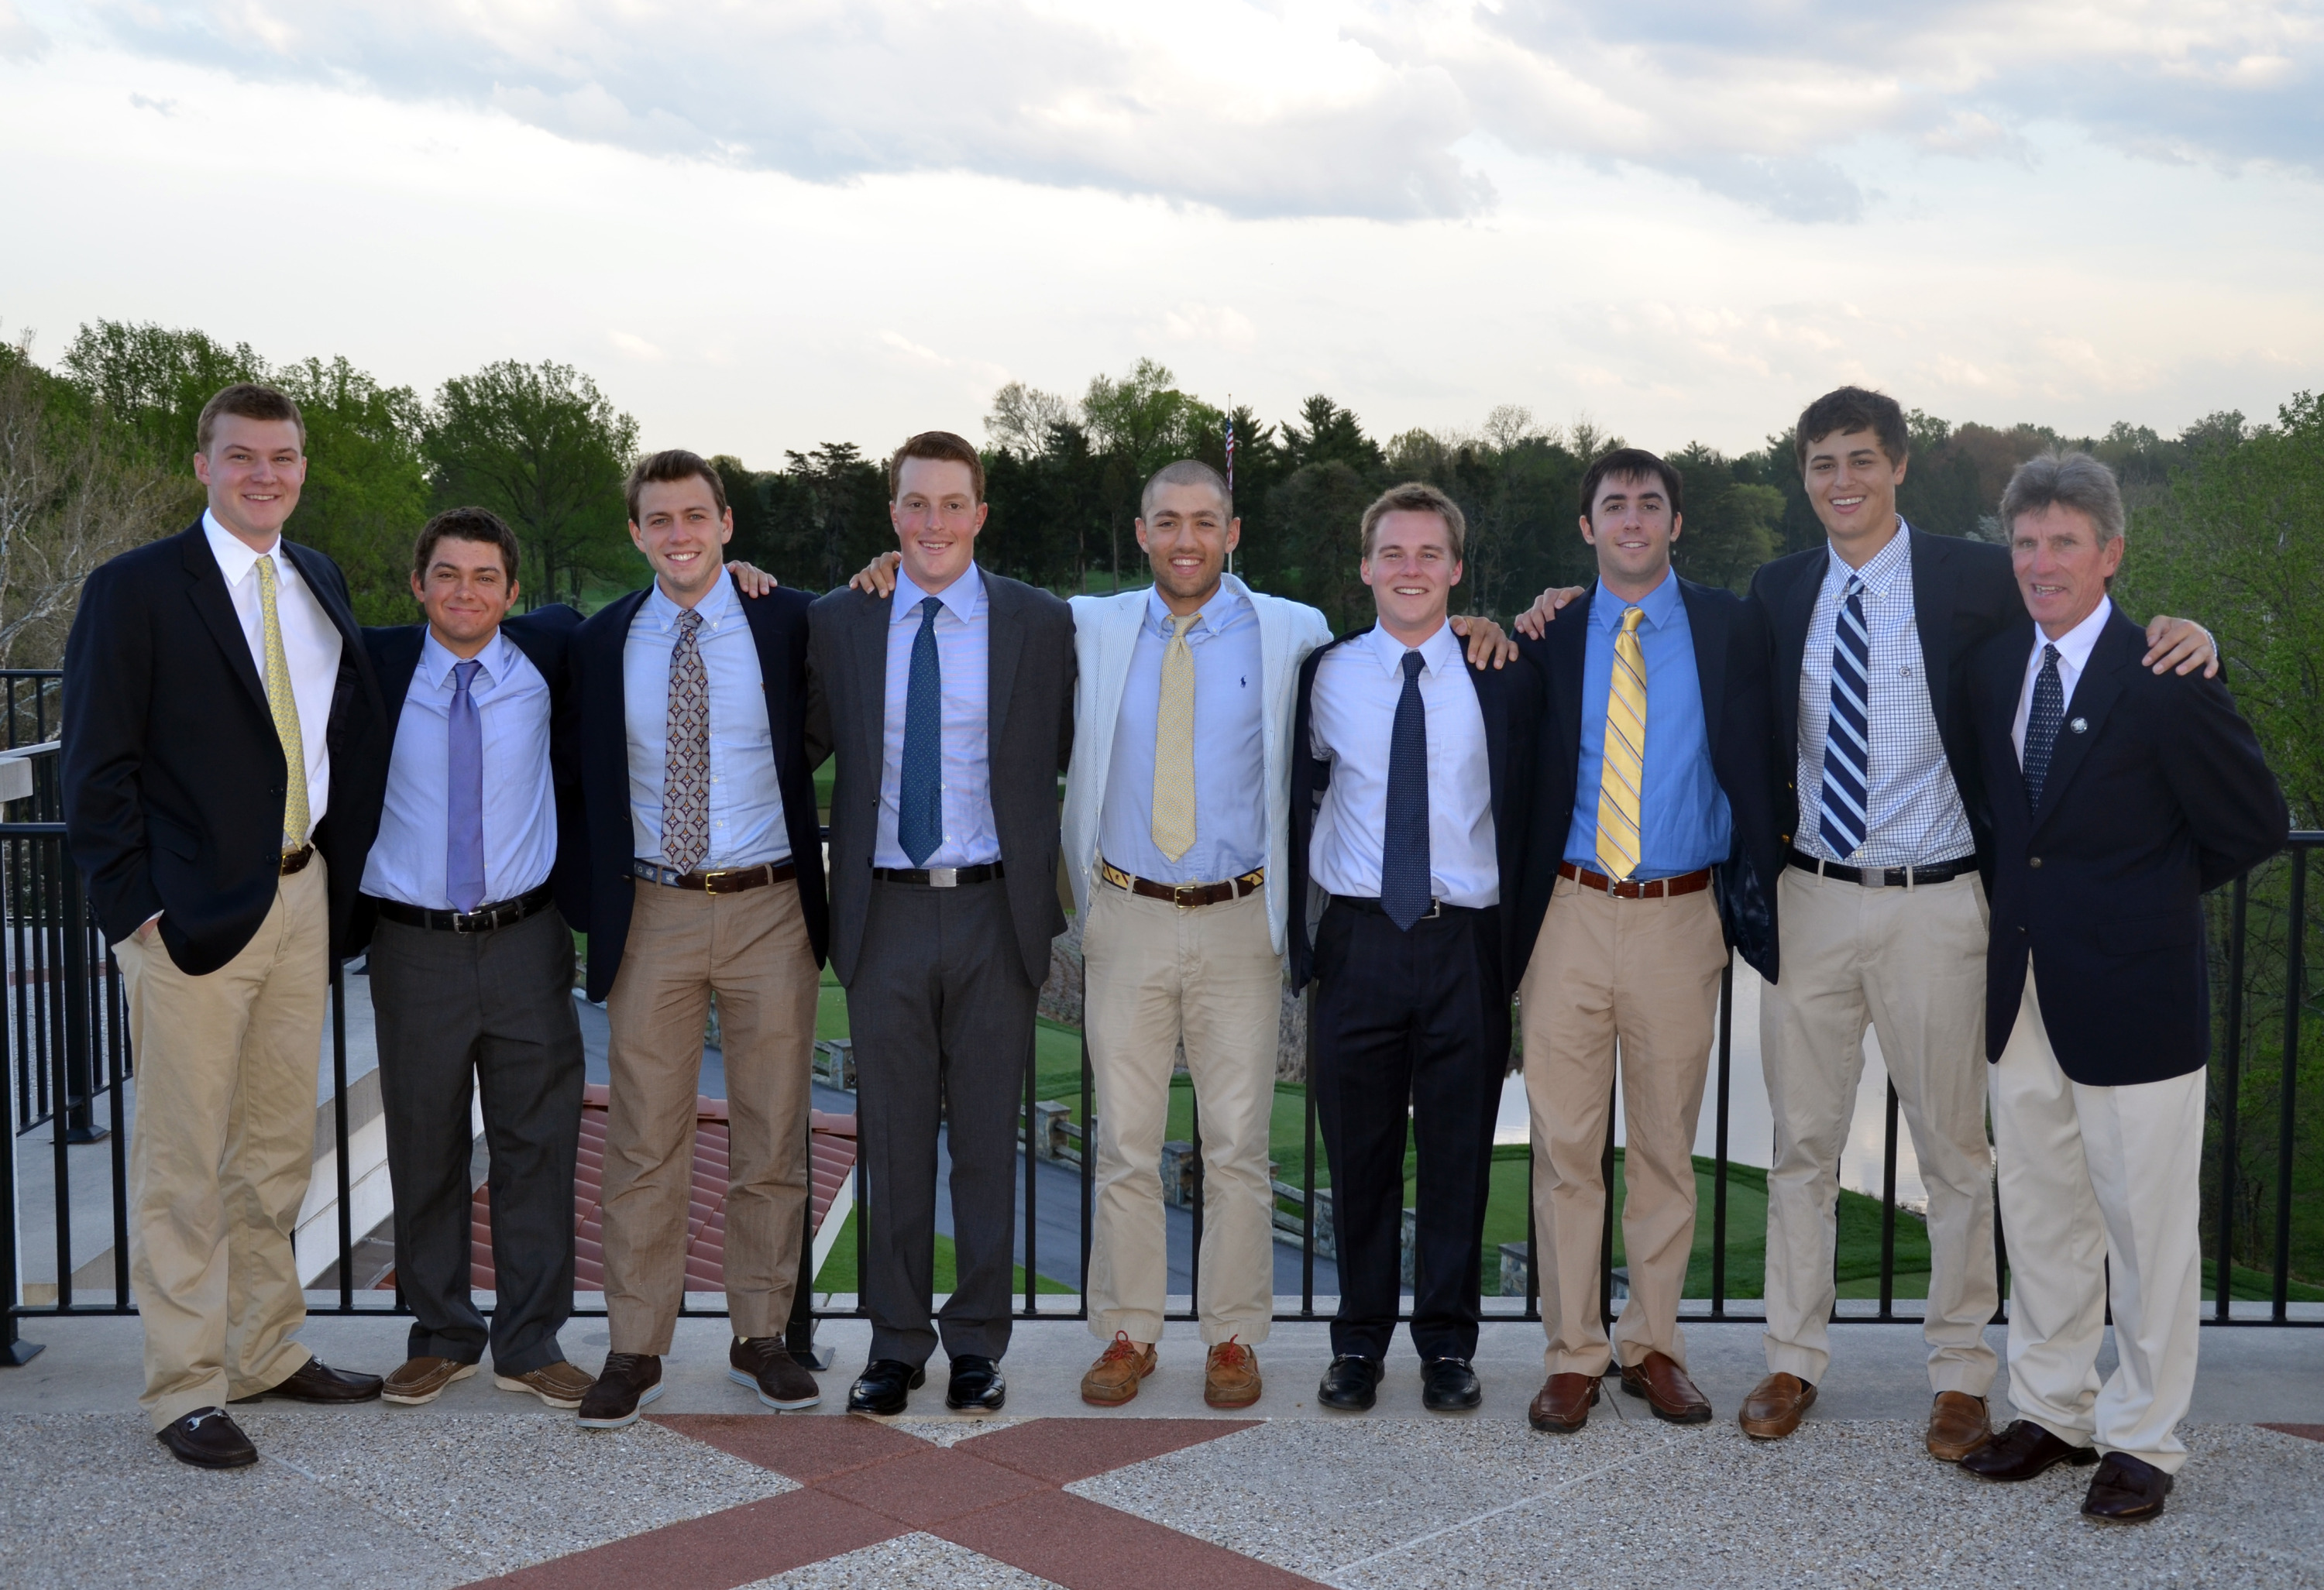 The Hoyas were sponsored by Tim McBride at Congressional Country Club for its post-season banquet.